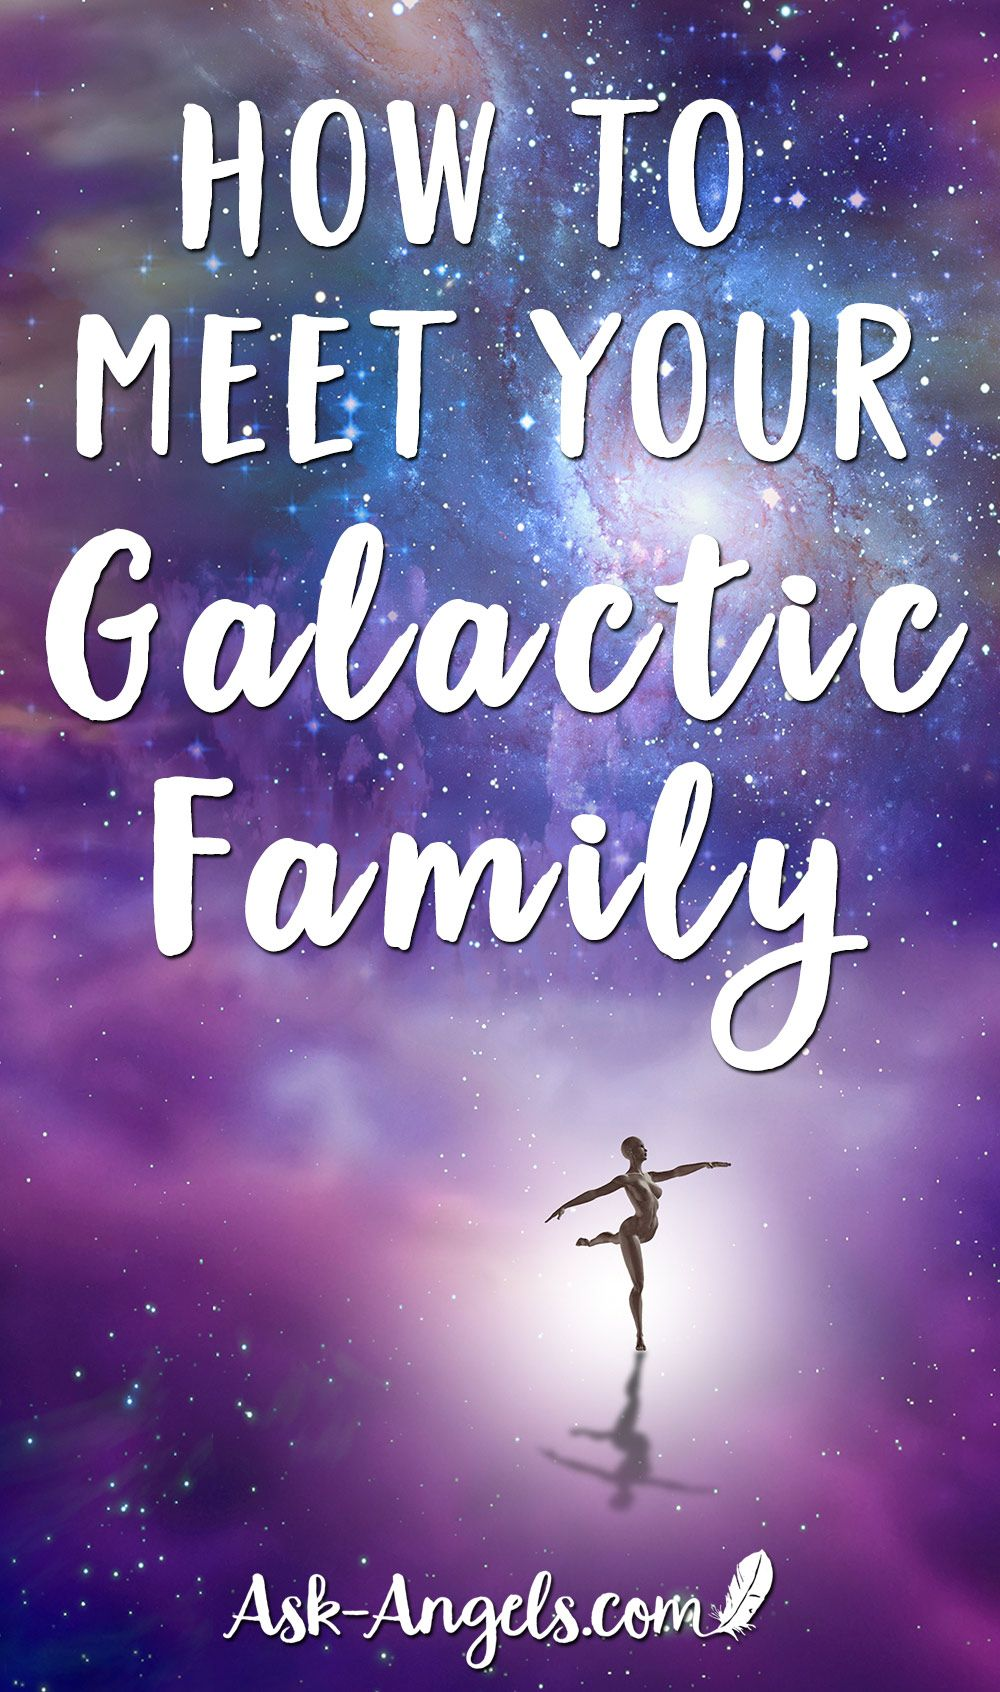 How to Meet Your Galactic Family - Ask-Angels.com